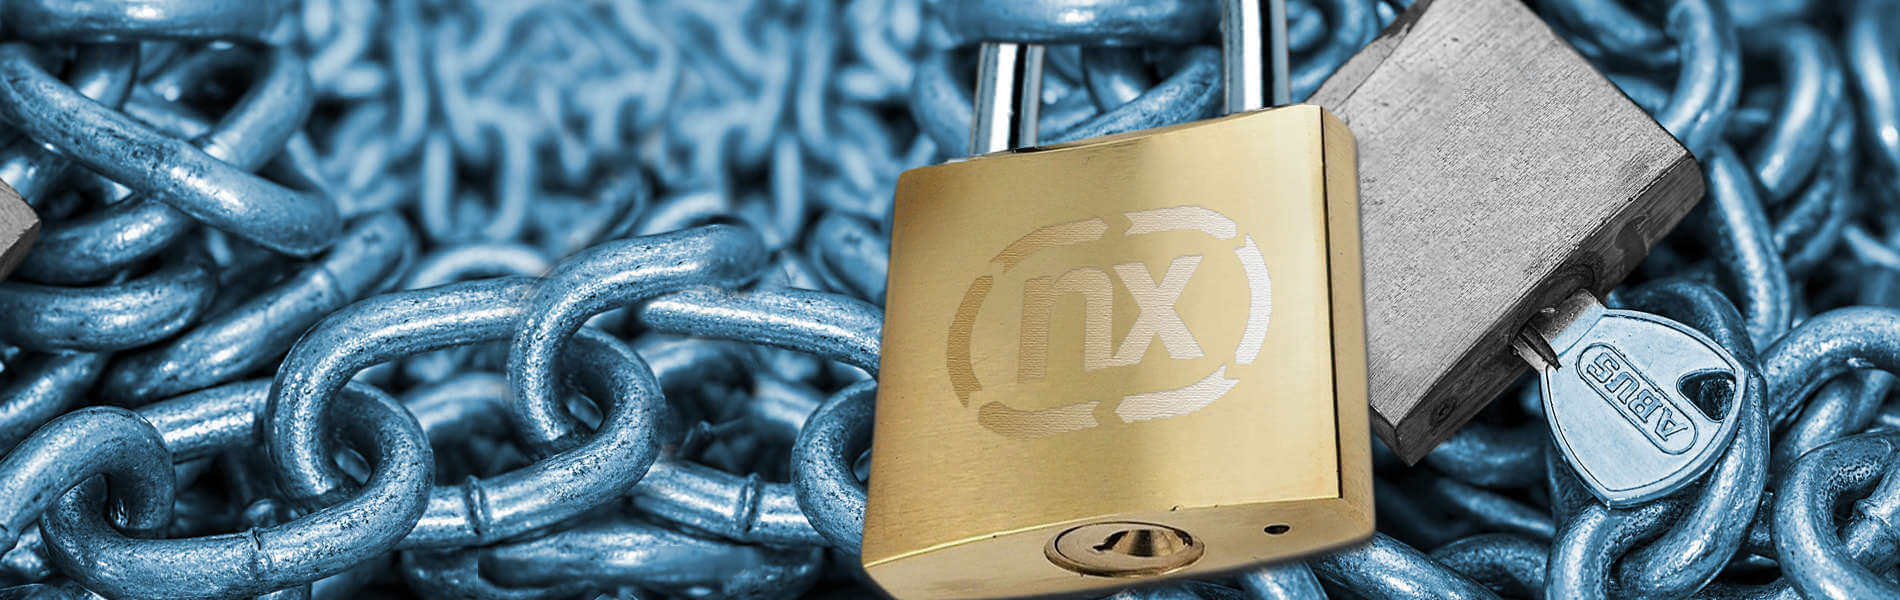 Secure Supply Chain with the NX Group